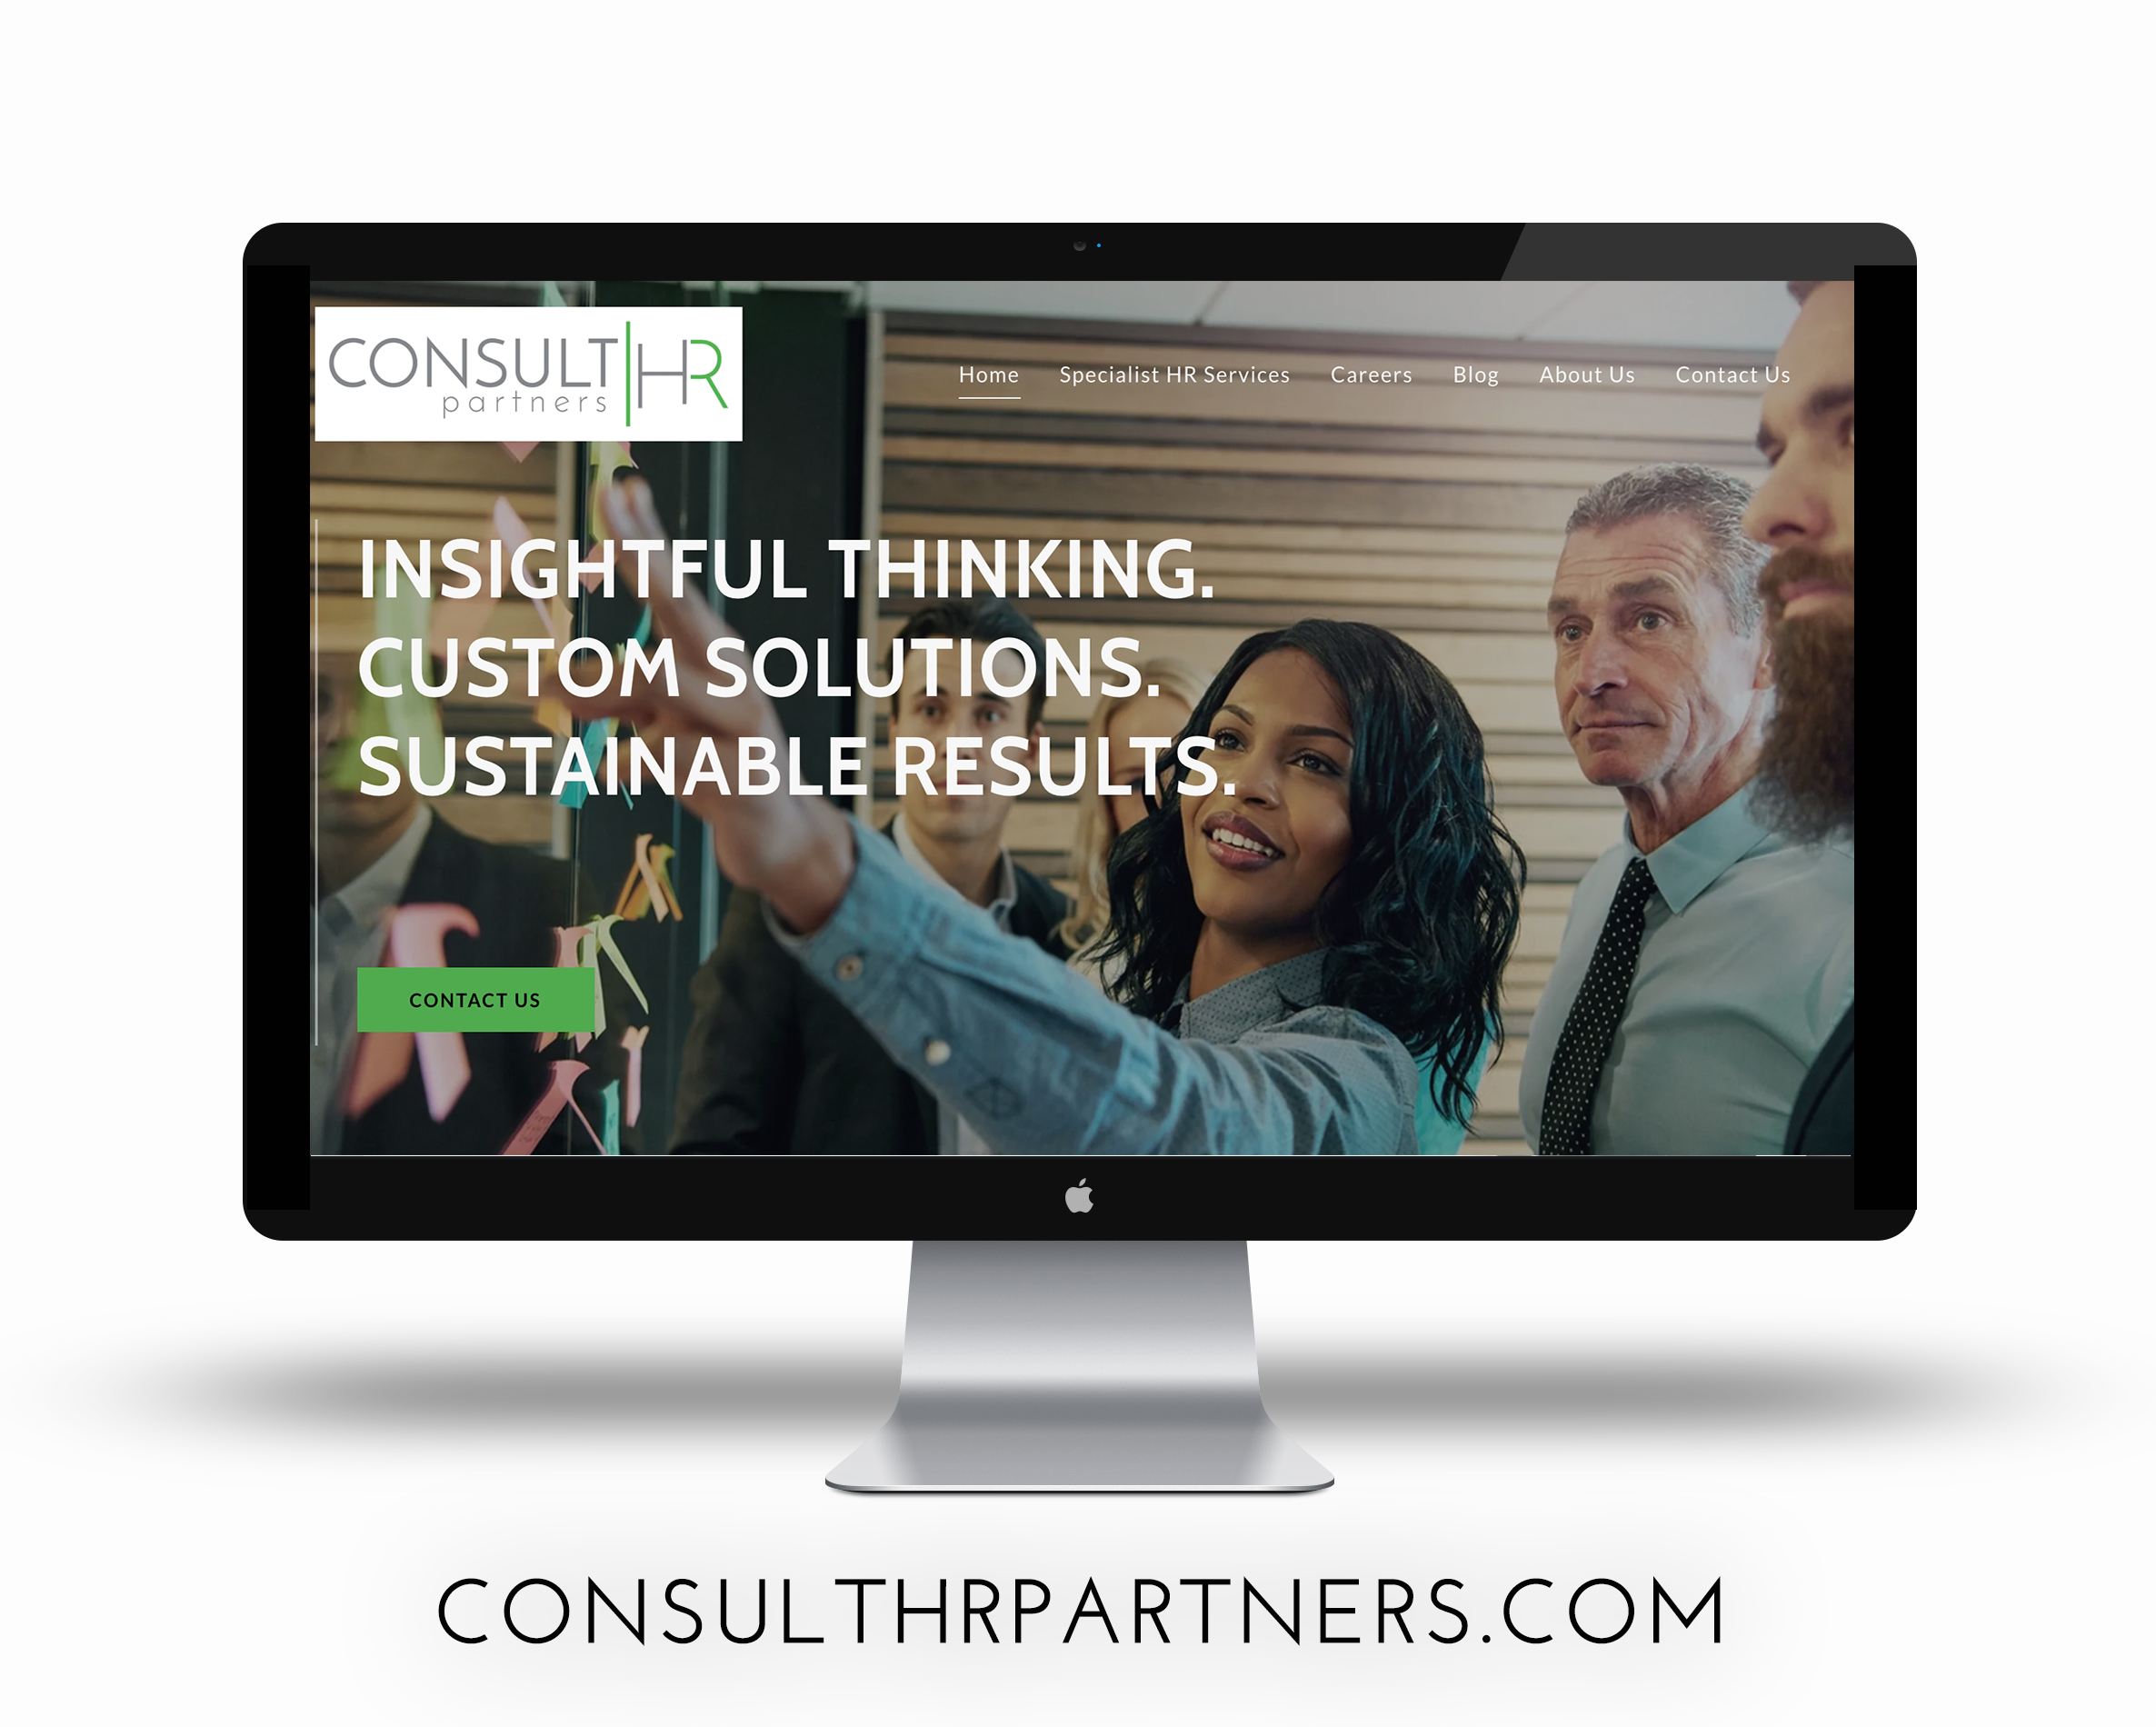 Stacey with Monroebot Graphics is so passionate in her craft… - and consistently delivers a high quality work product. She is also super friendly and great to work with. So happy to be working with her Company.Jennifer MartinezCEO + President of Consult HR Partners